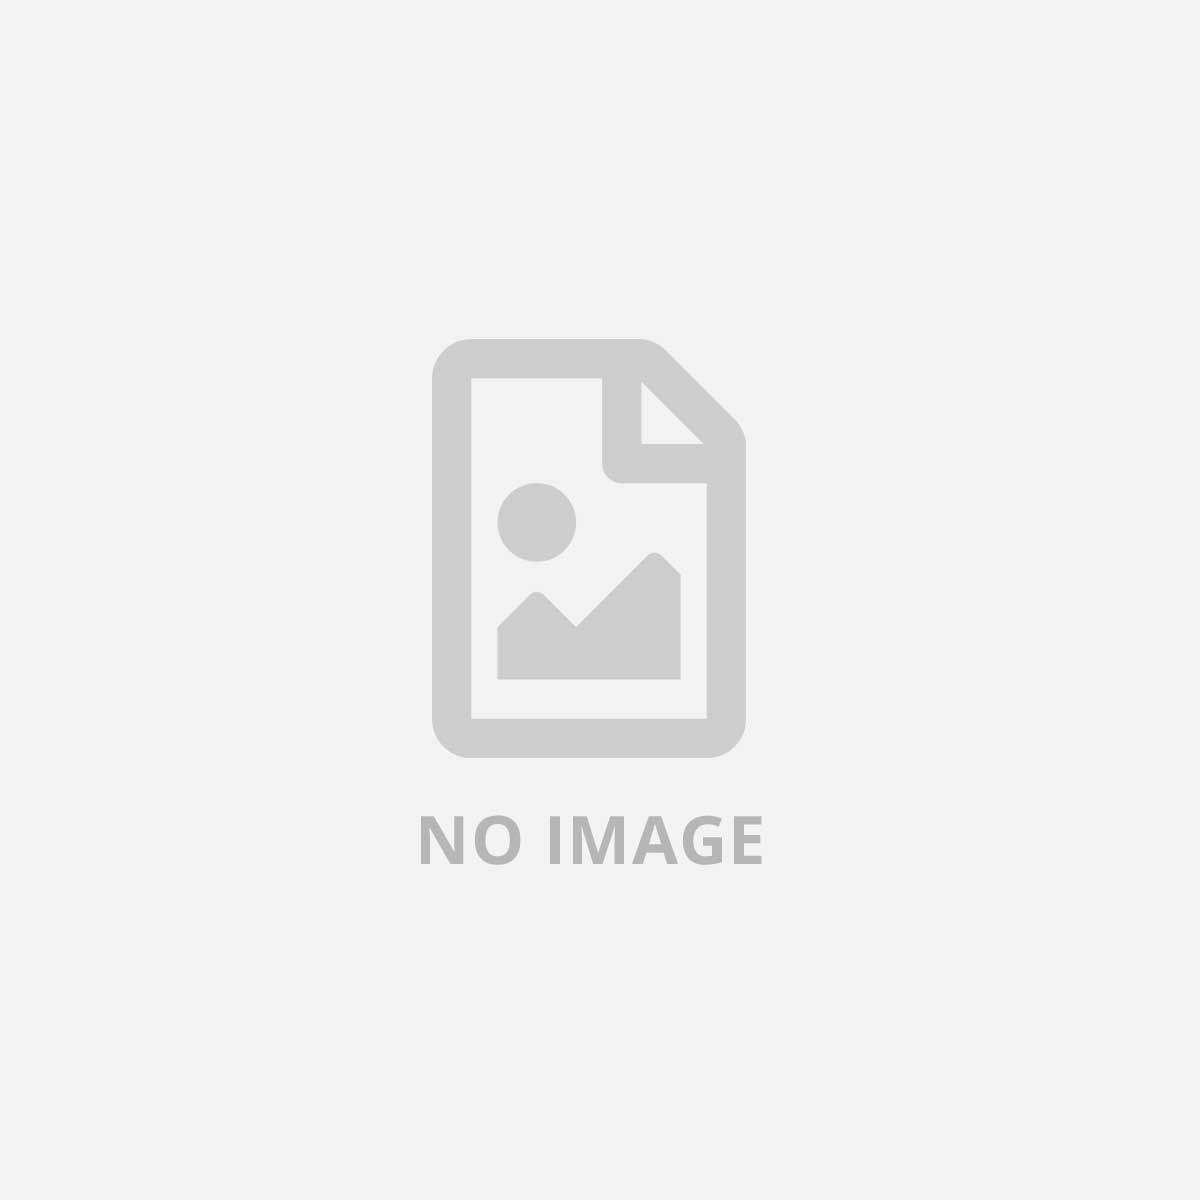 HP OFFICEJET PRO 7730 WIDE F AIO